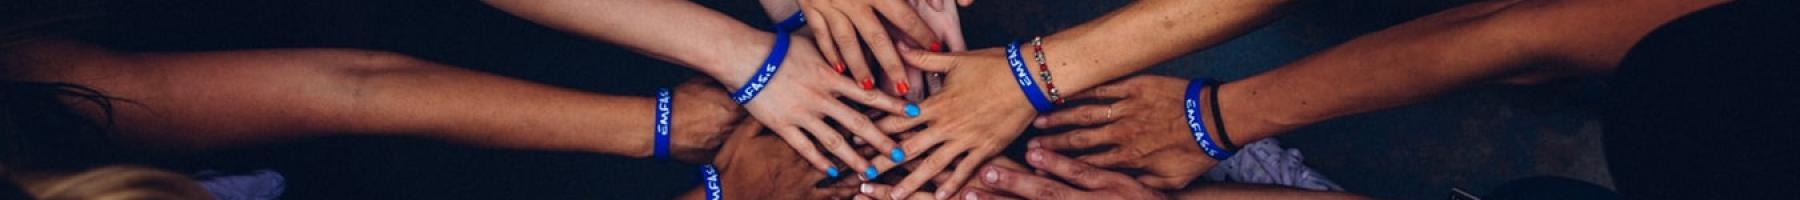 banner image of many hands coming together